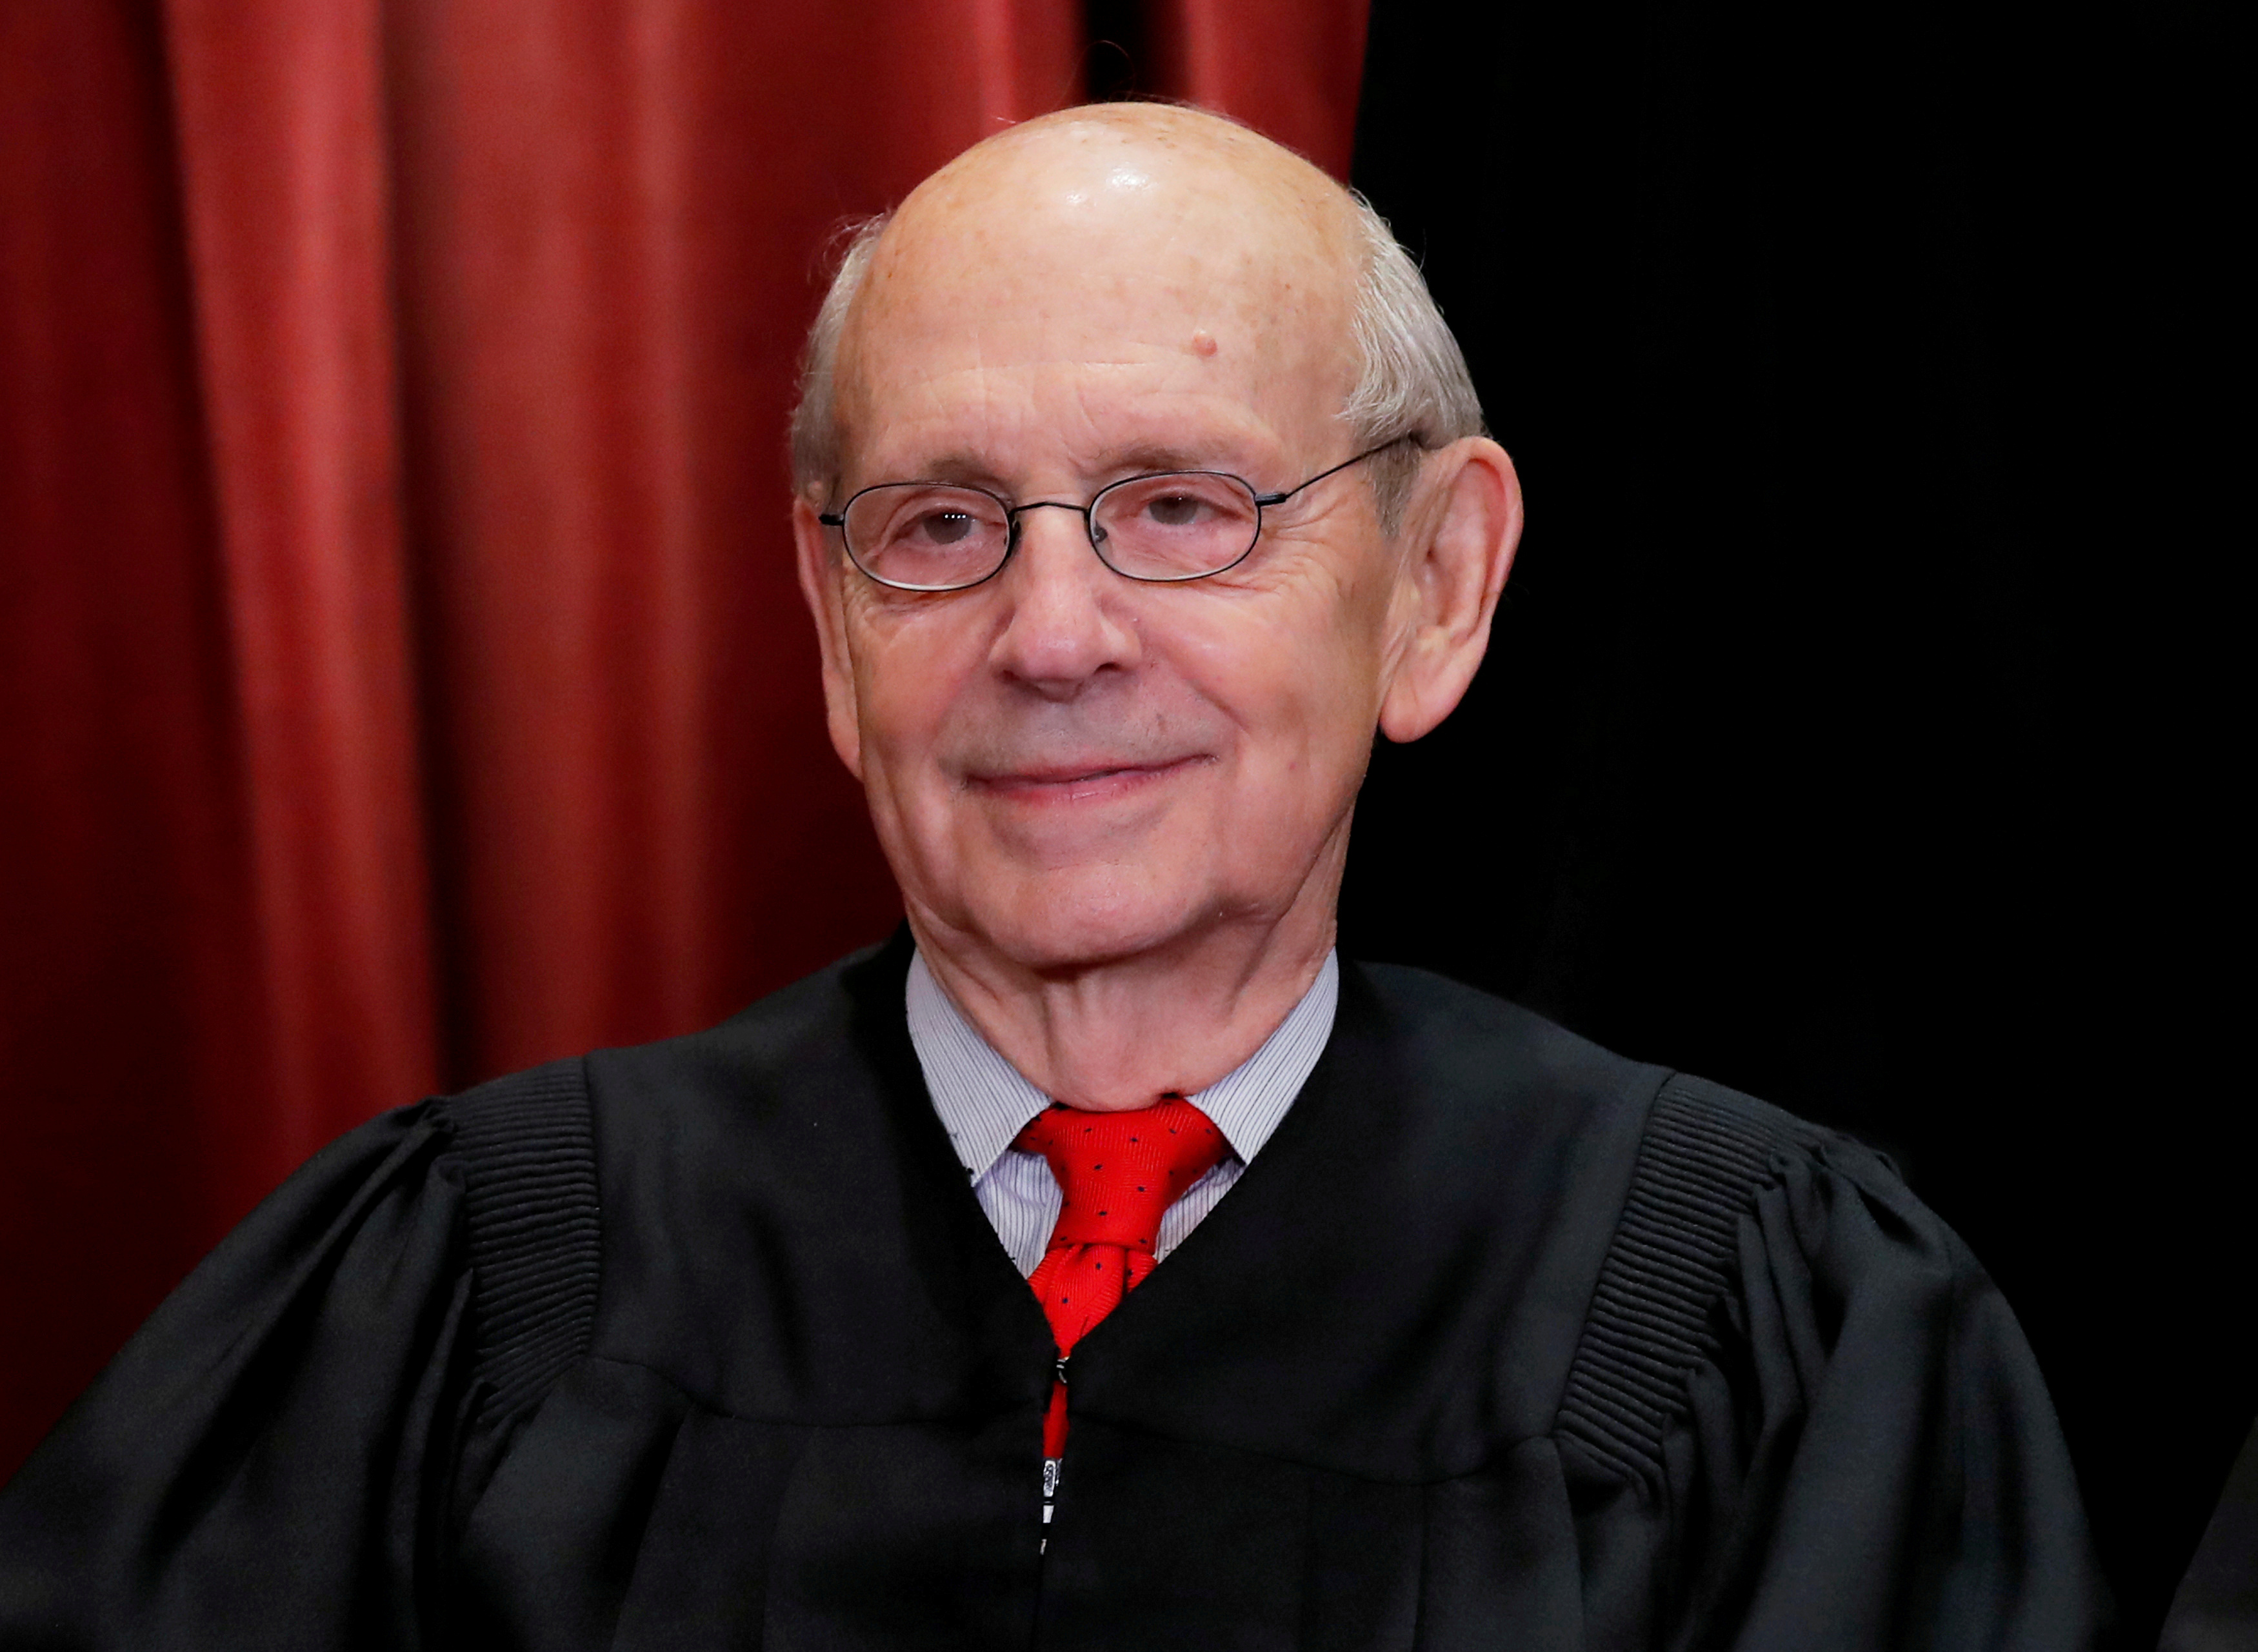 U.S. Supreme Court Associate Justice Stephen Breyer is seen during a group portrait session for the new full court at the Supreme Court in Washington, U.S., November 30, 2018. REUTERS/Jim Young/File Photo